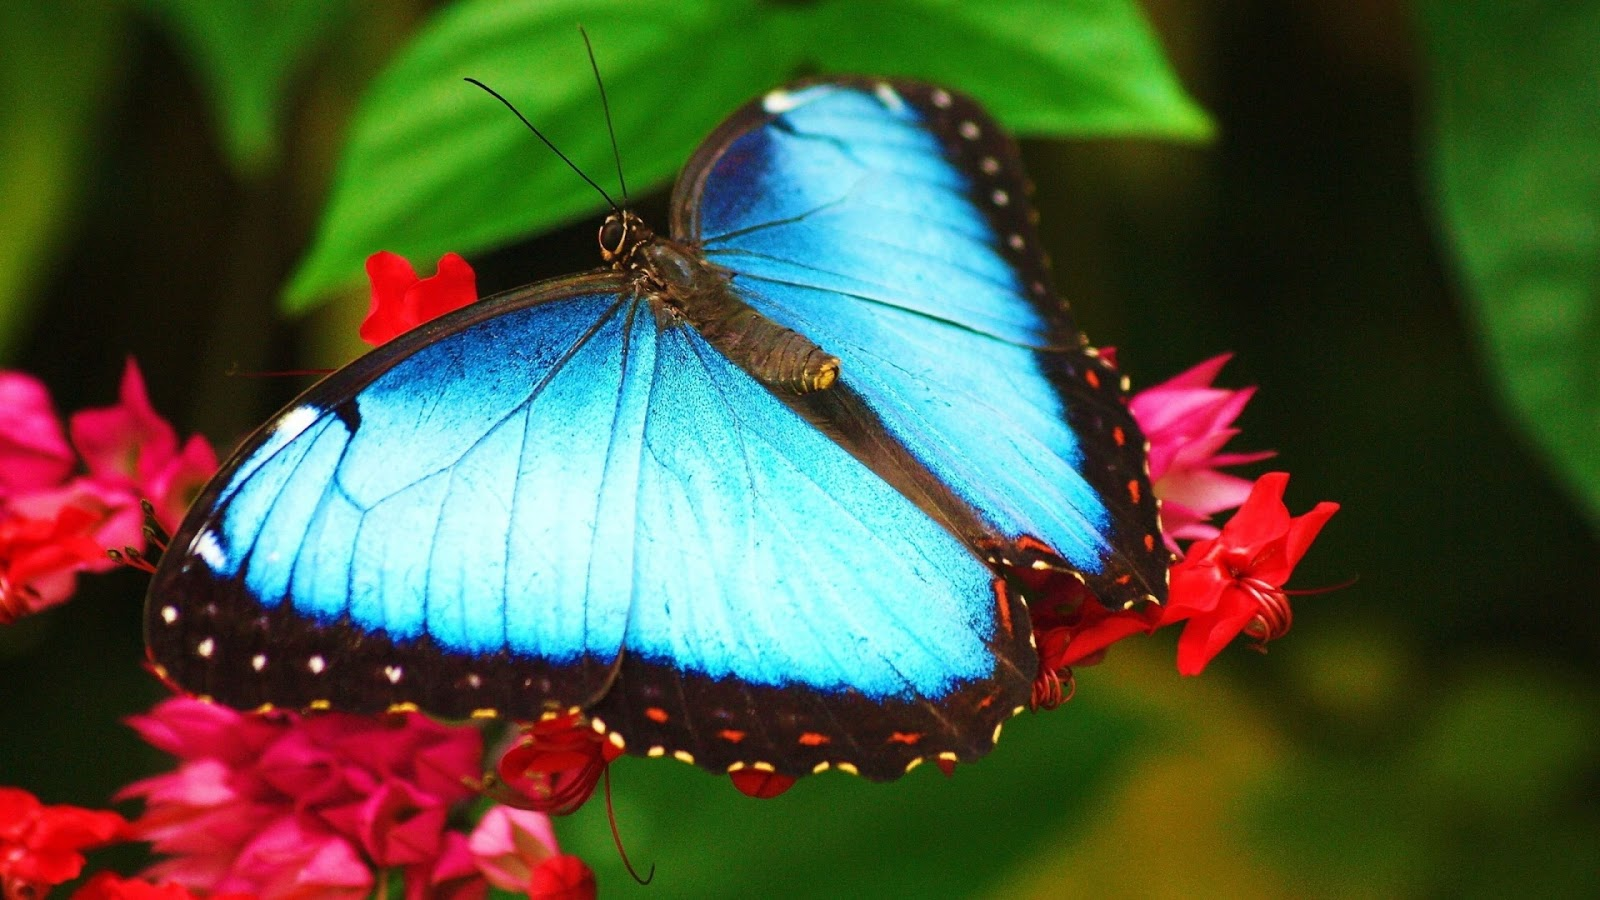 butterfly hq wallpaper 1024x768 - photo #42